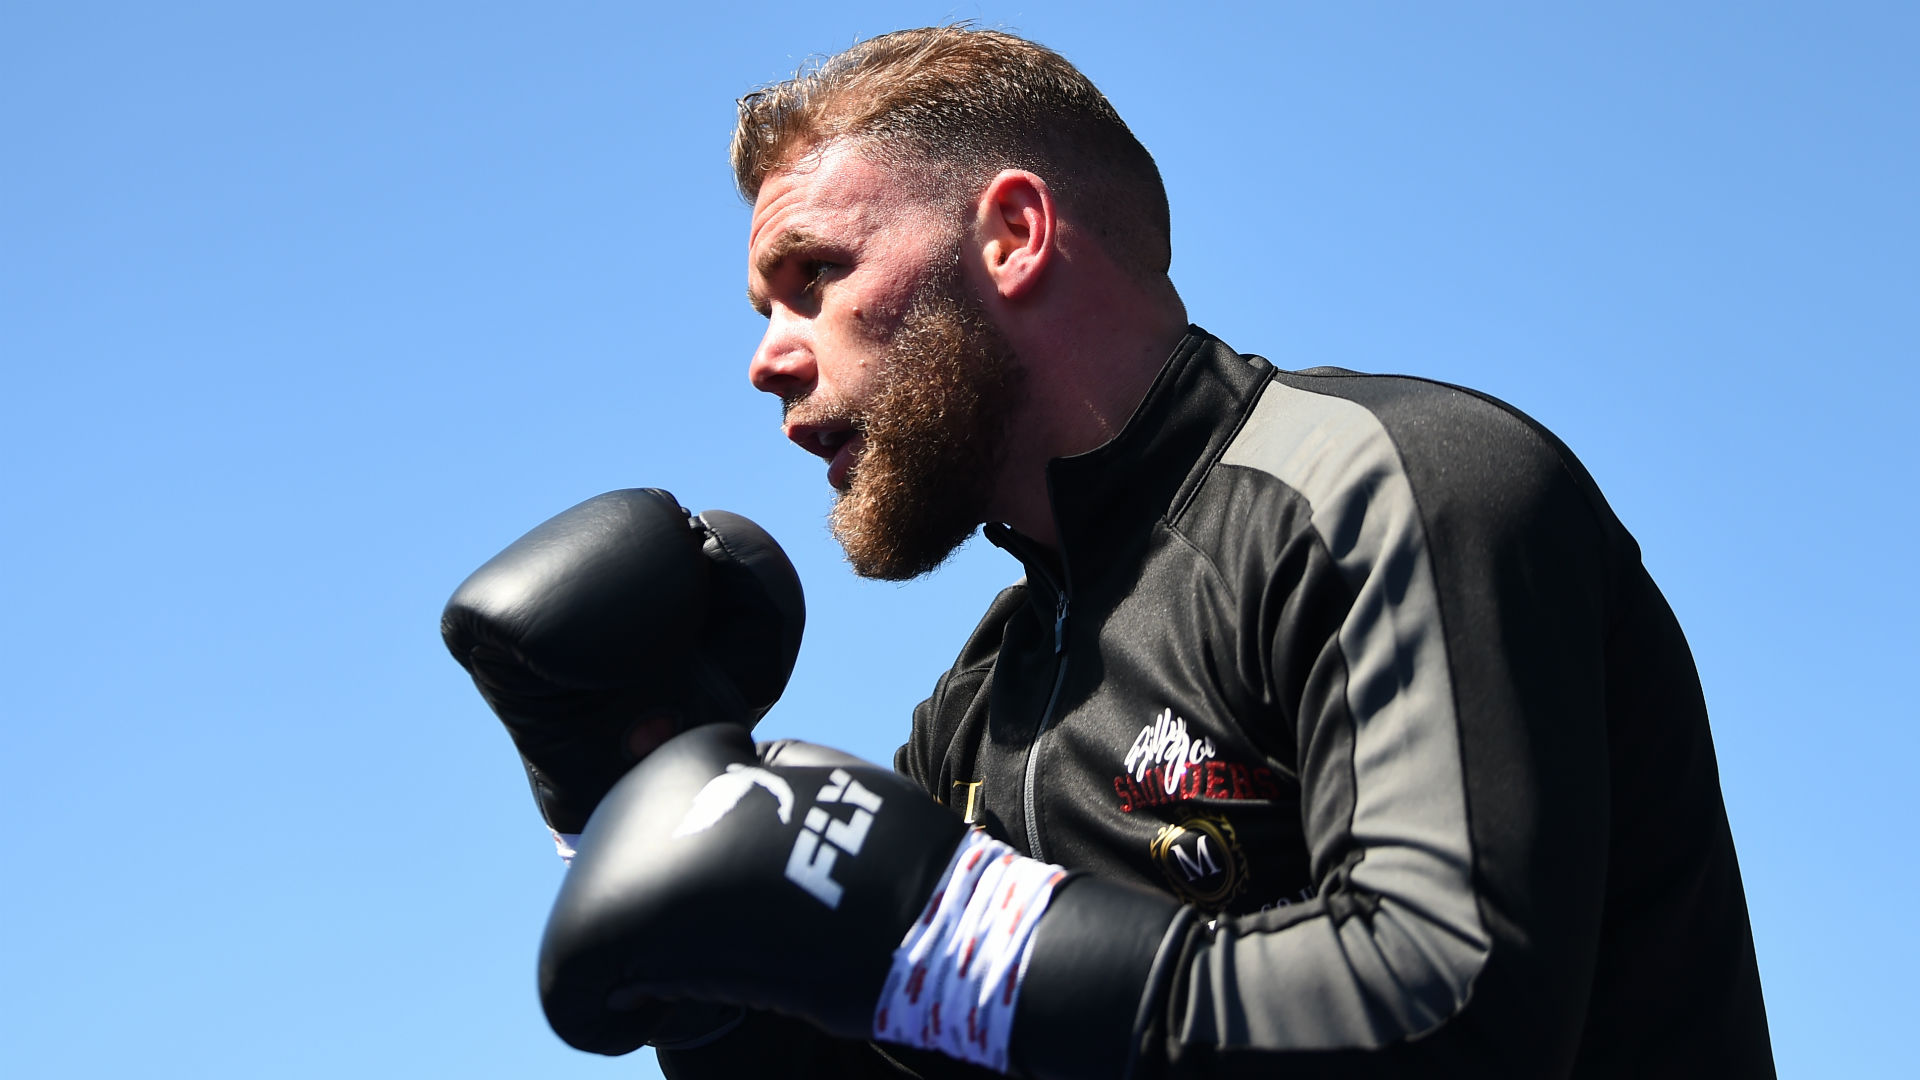 Saunders suspended for video advising how to hit women